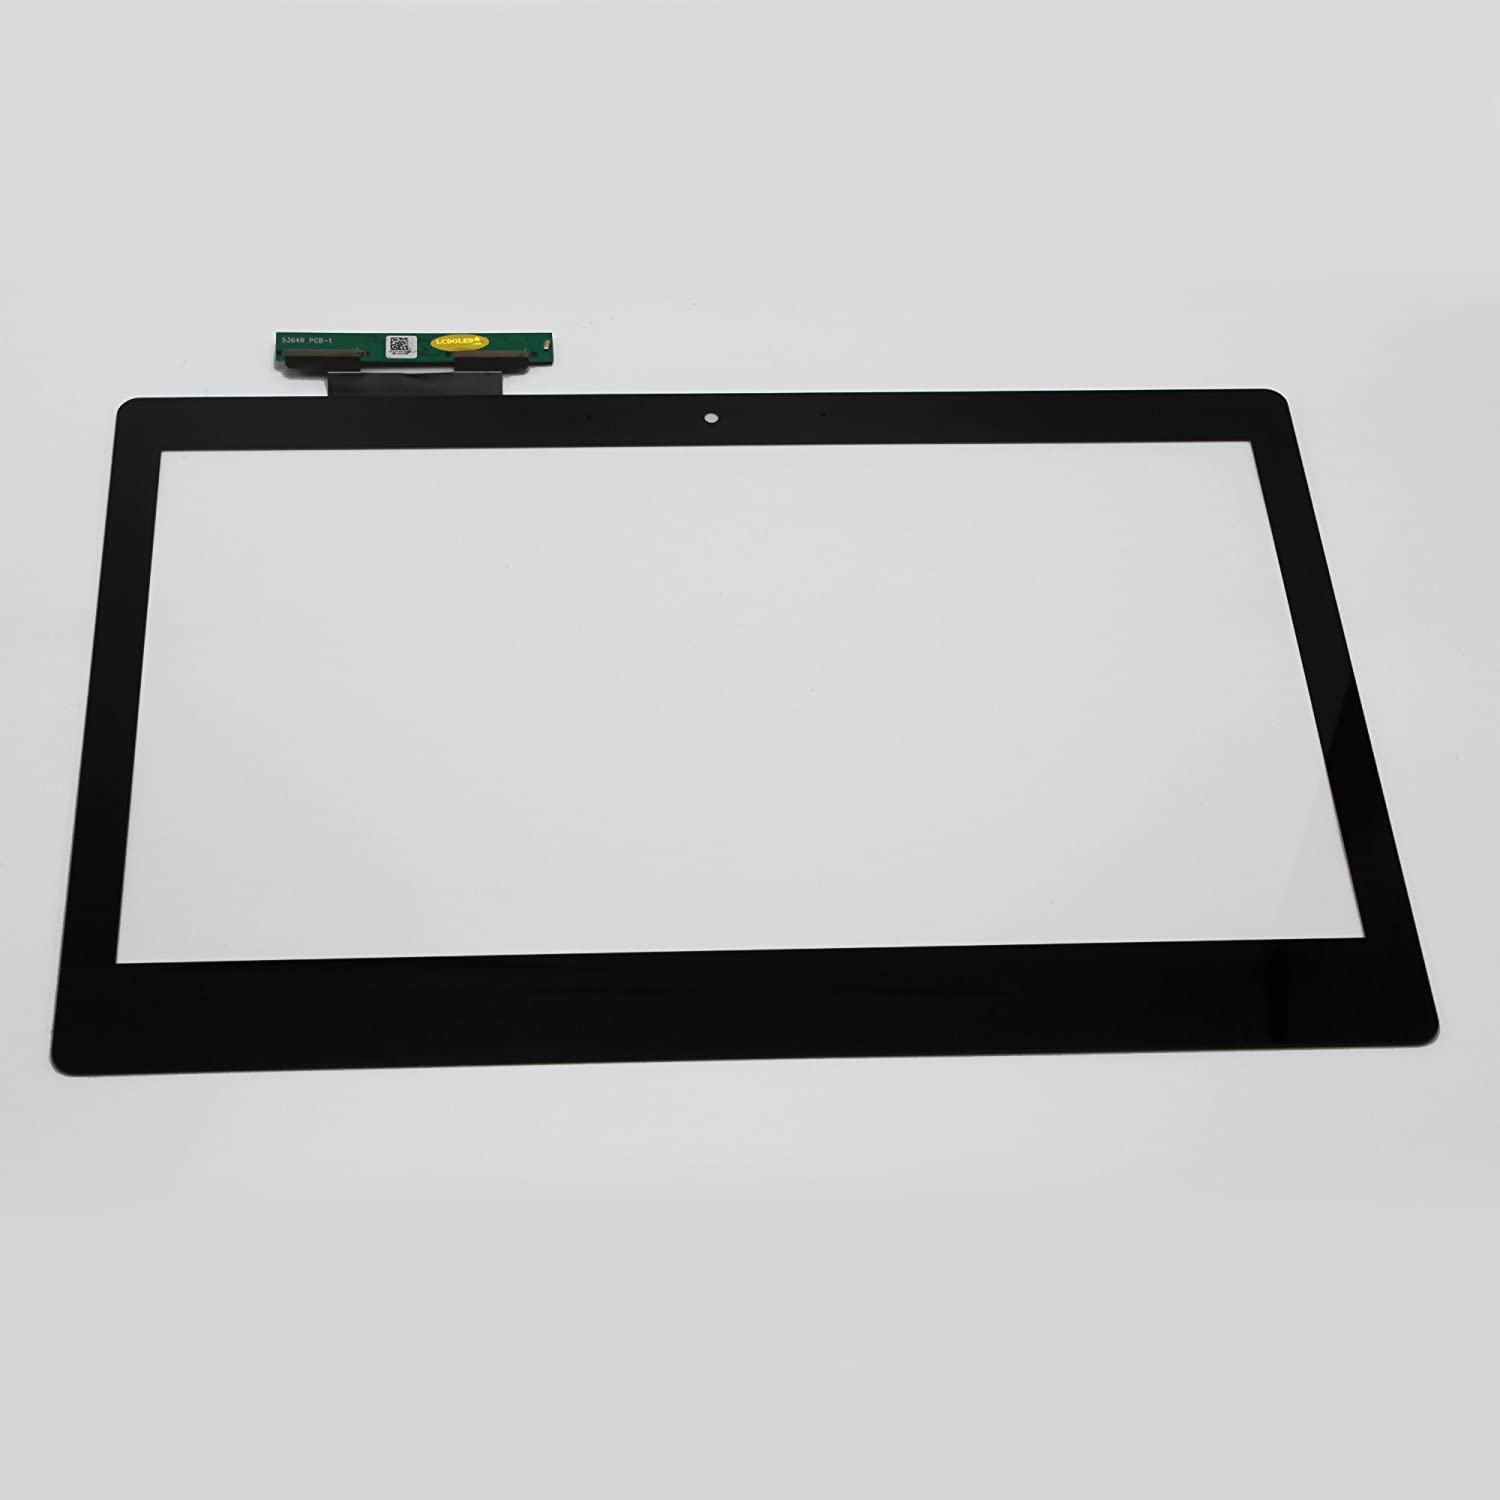 LCDOLED Touch Laptop Screen Glass Panel + Digitizer 14 inch for Dell Inspiron 14R 14 (7437)